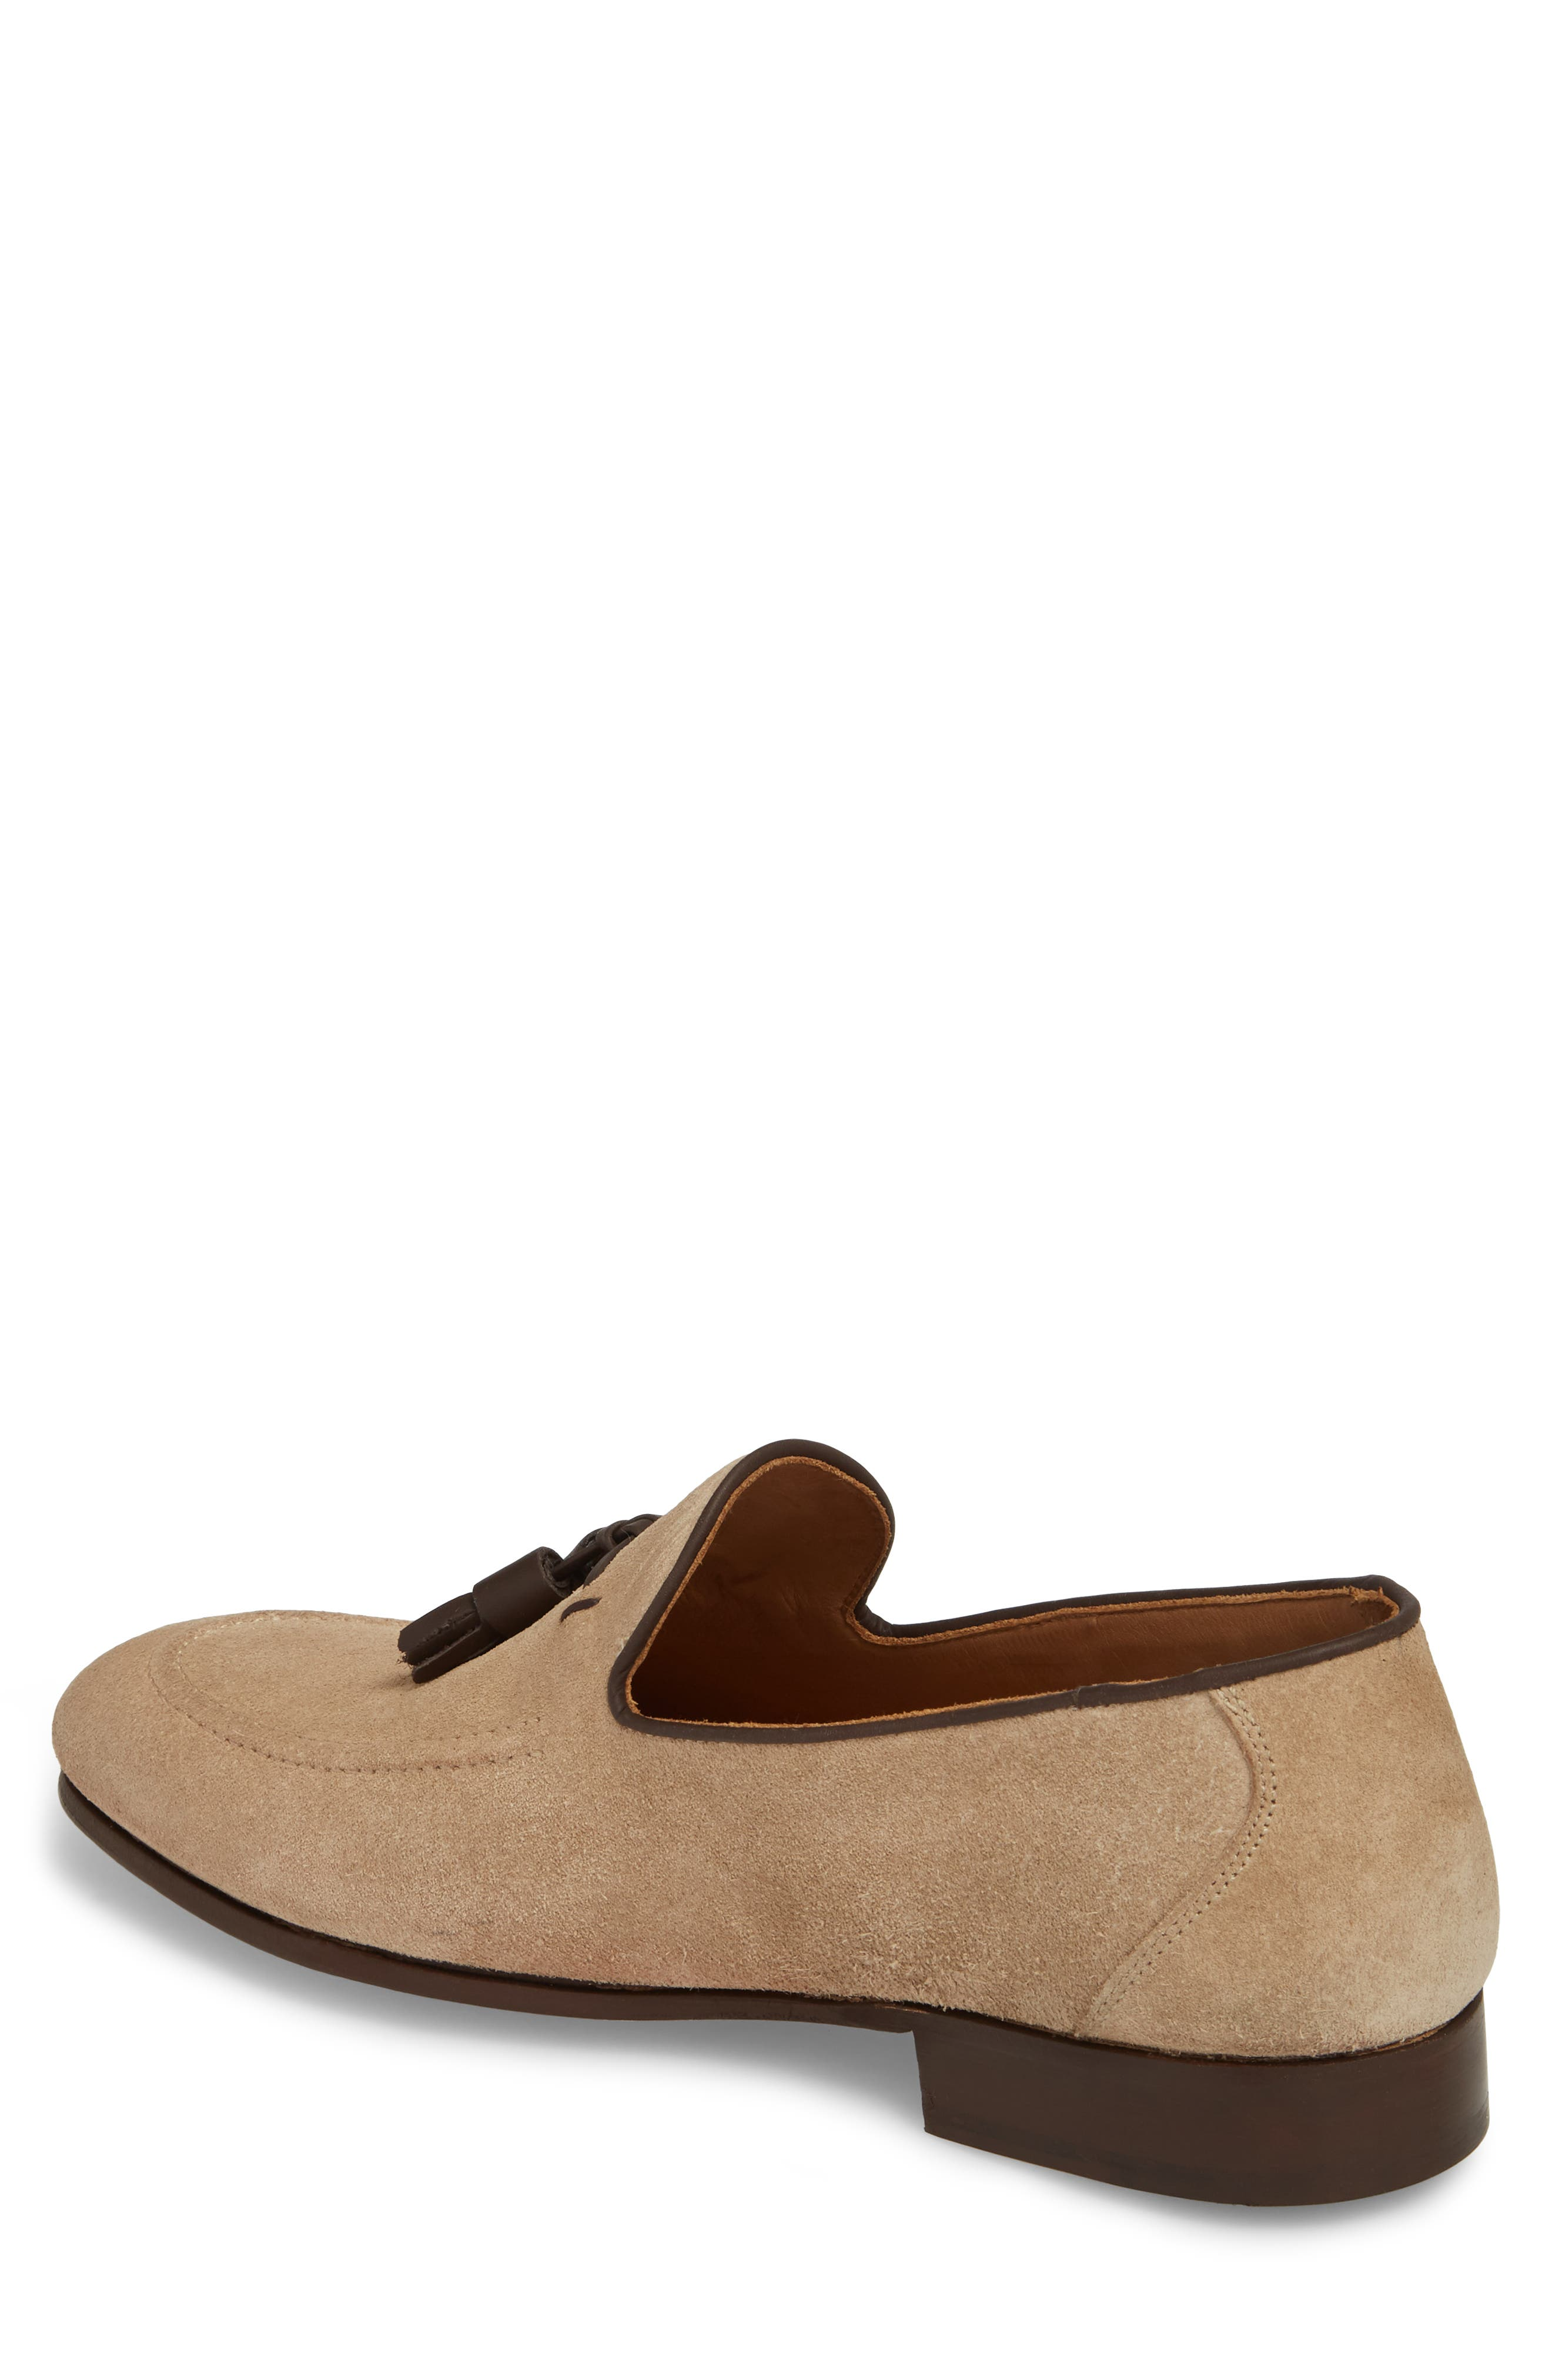 Ario Tassel Loafer,                             Alternate thumbnail 2, color,                             Sand Suede